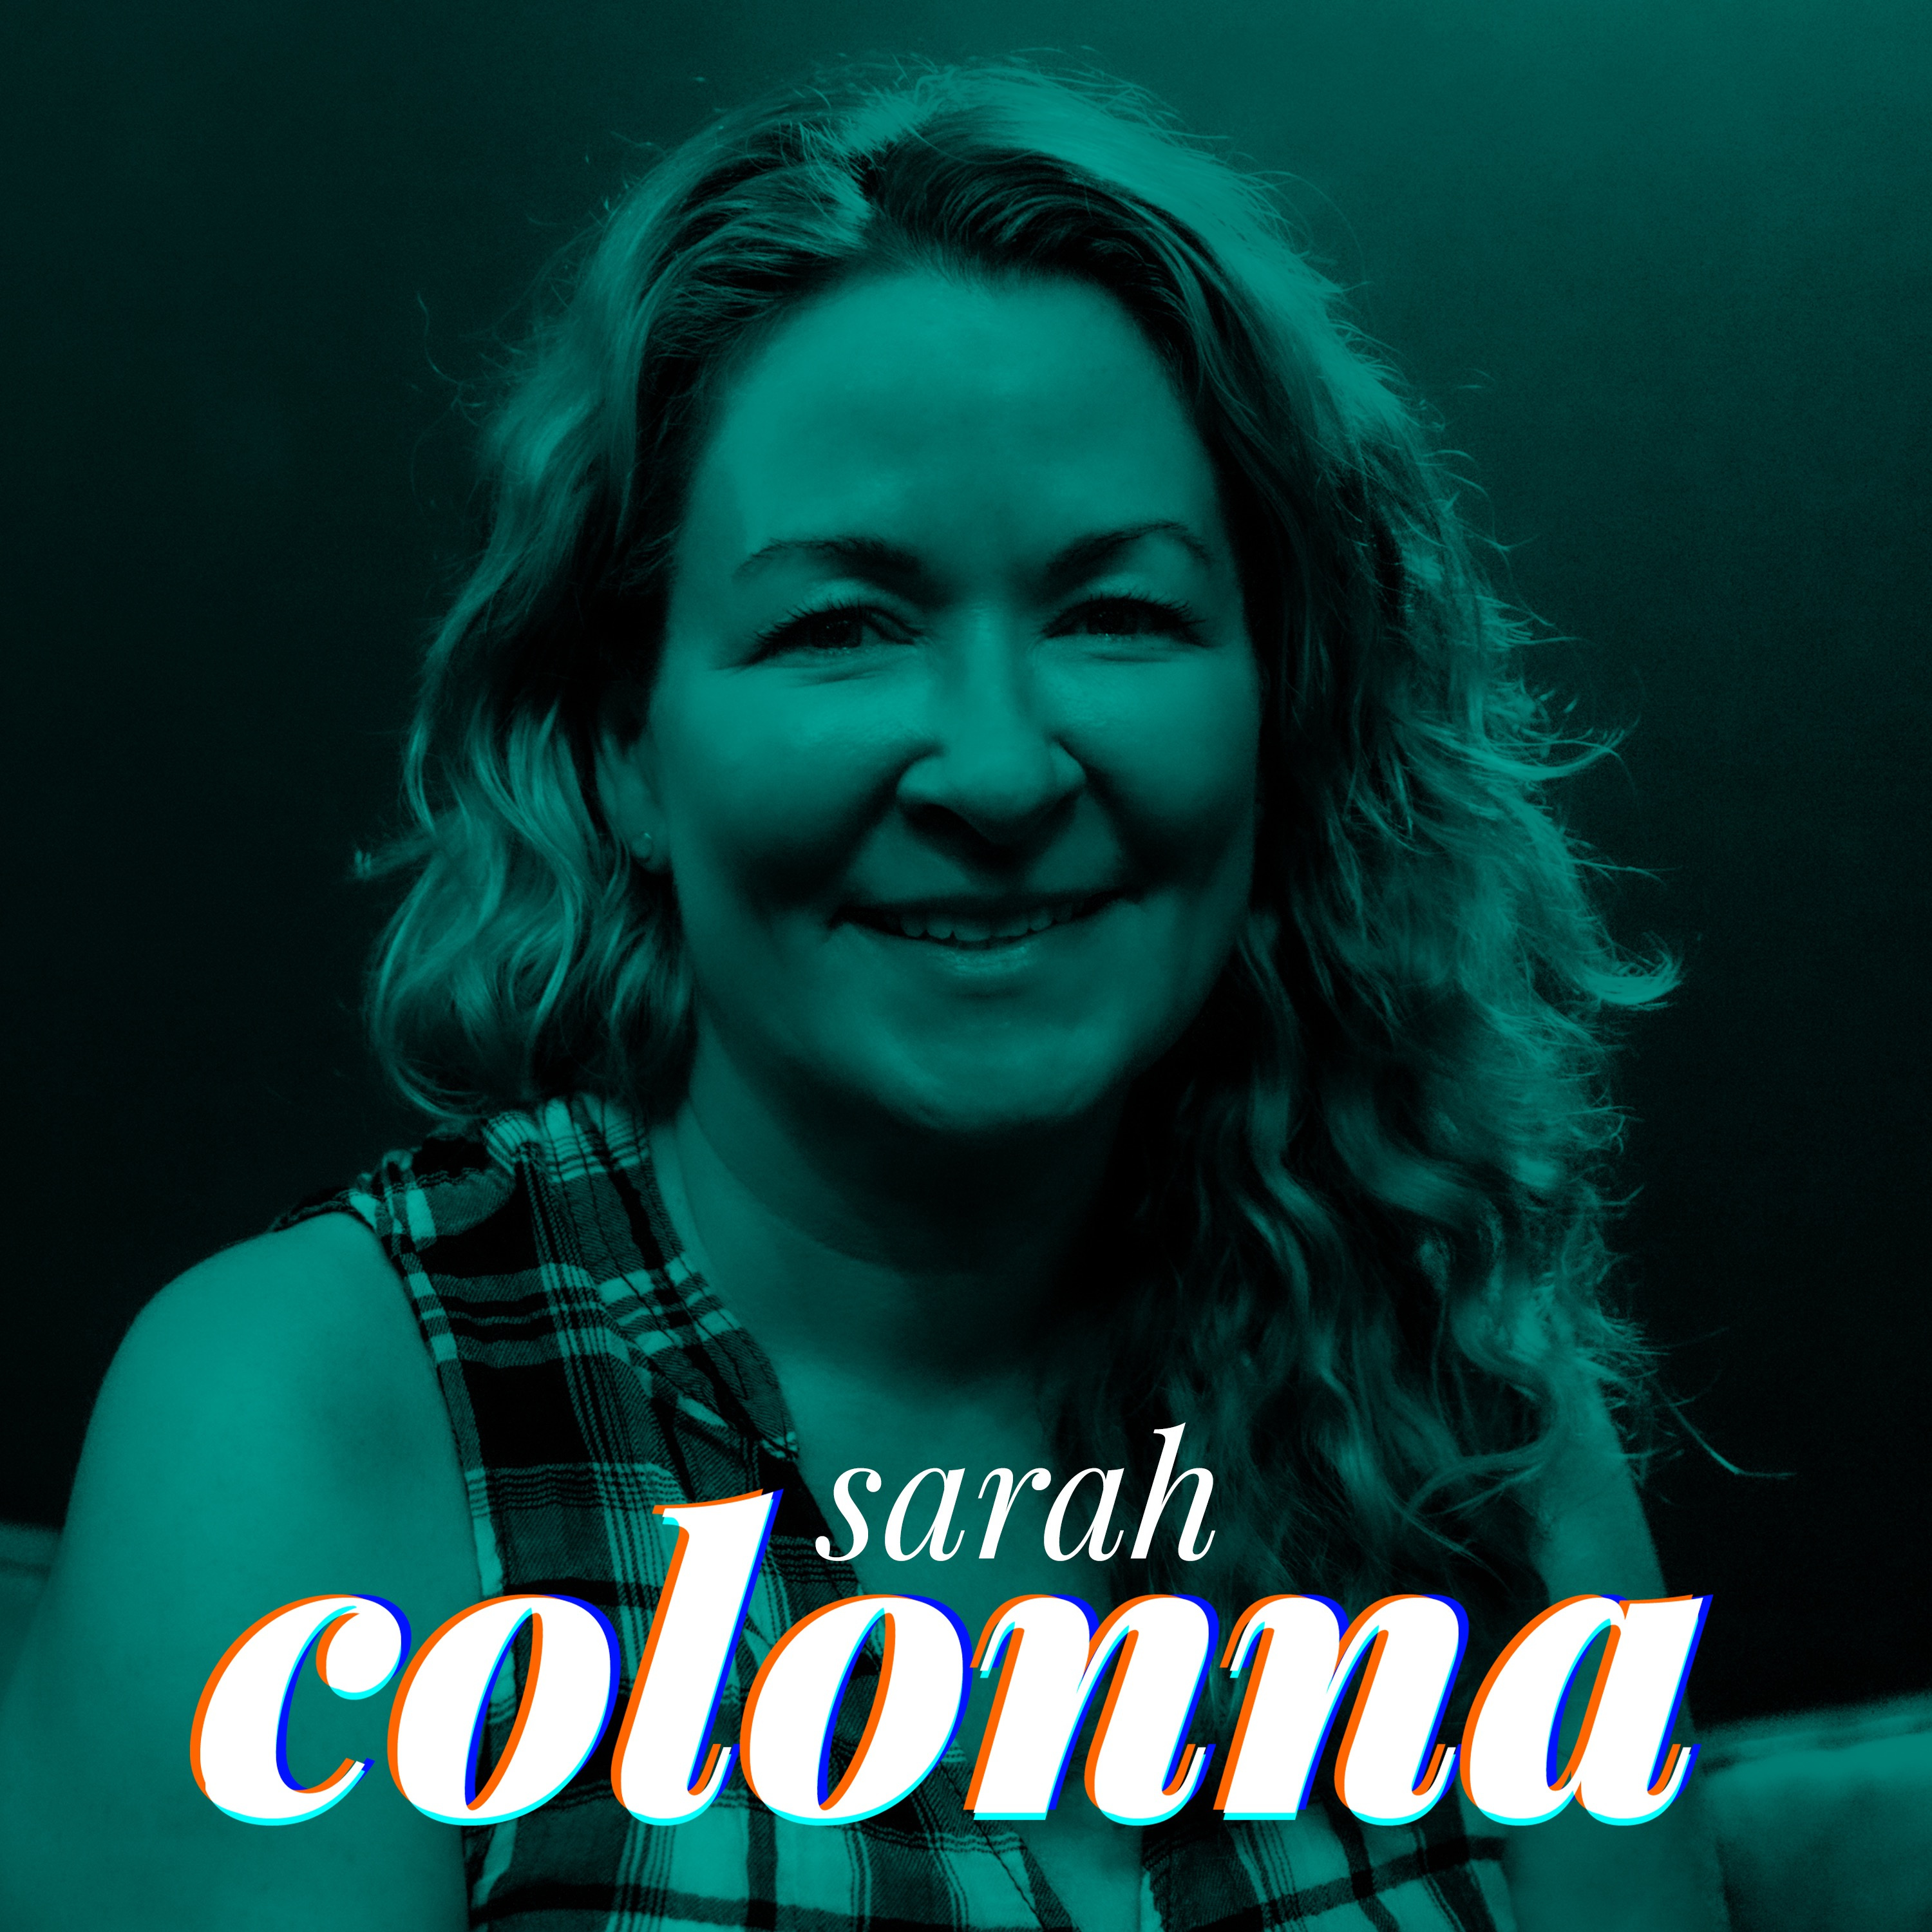 Sarah Colonna on mother/daughter relationships, fake boobs, and rooting for the sad characters.